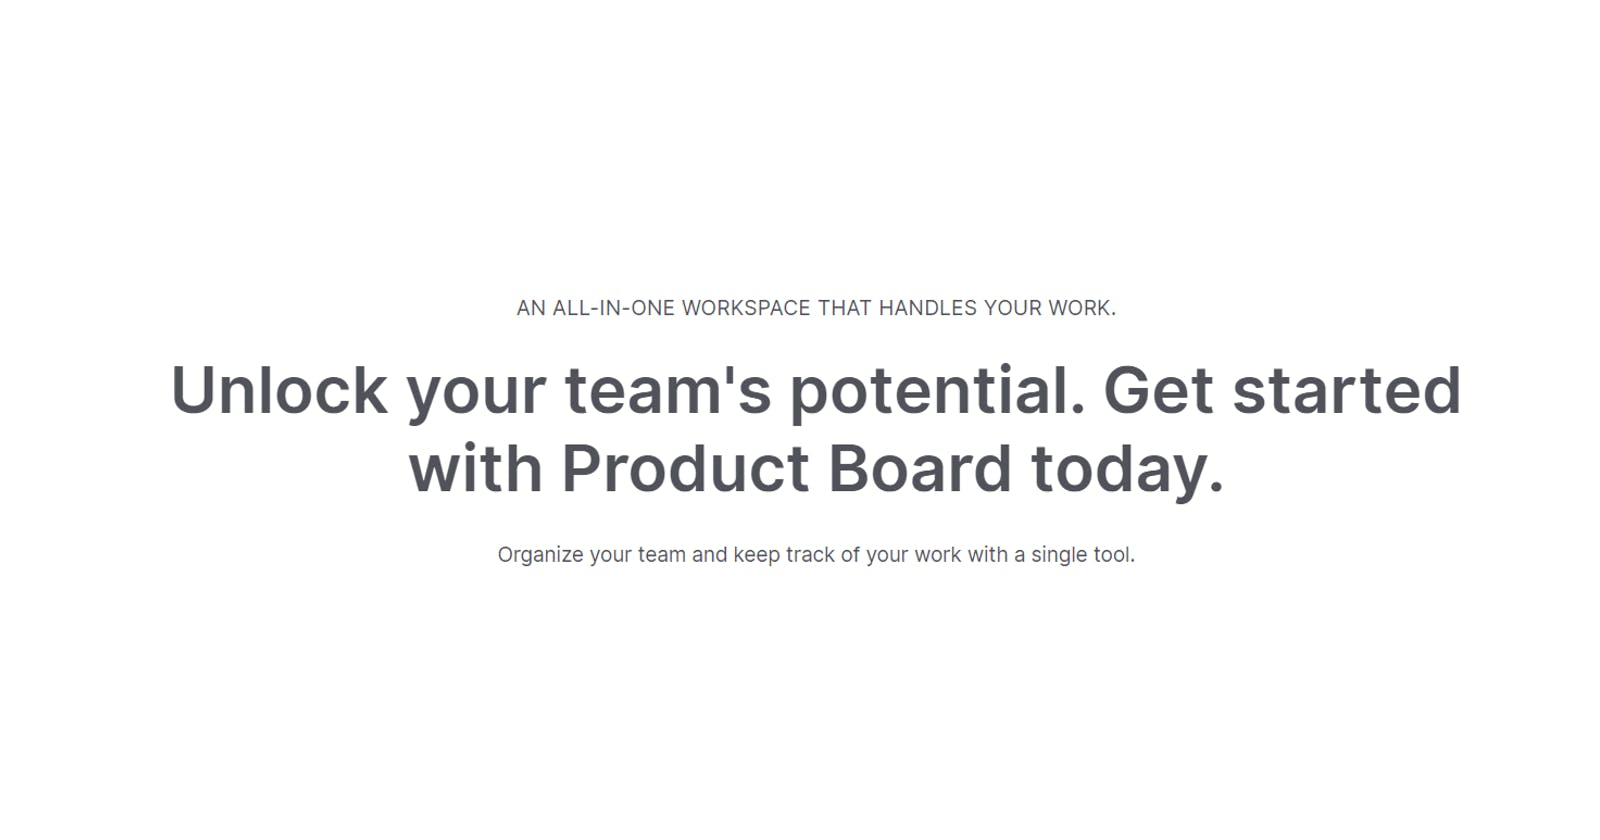 Introducing Product Board: A Project Management Platform